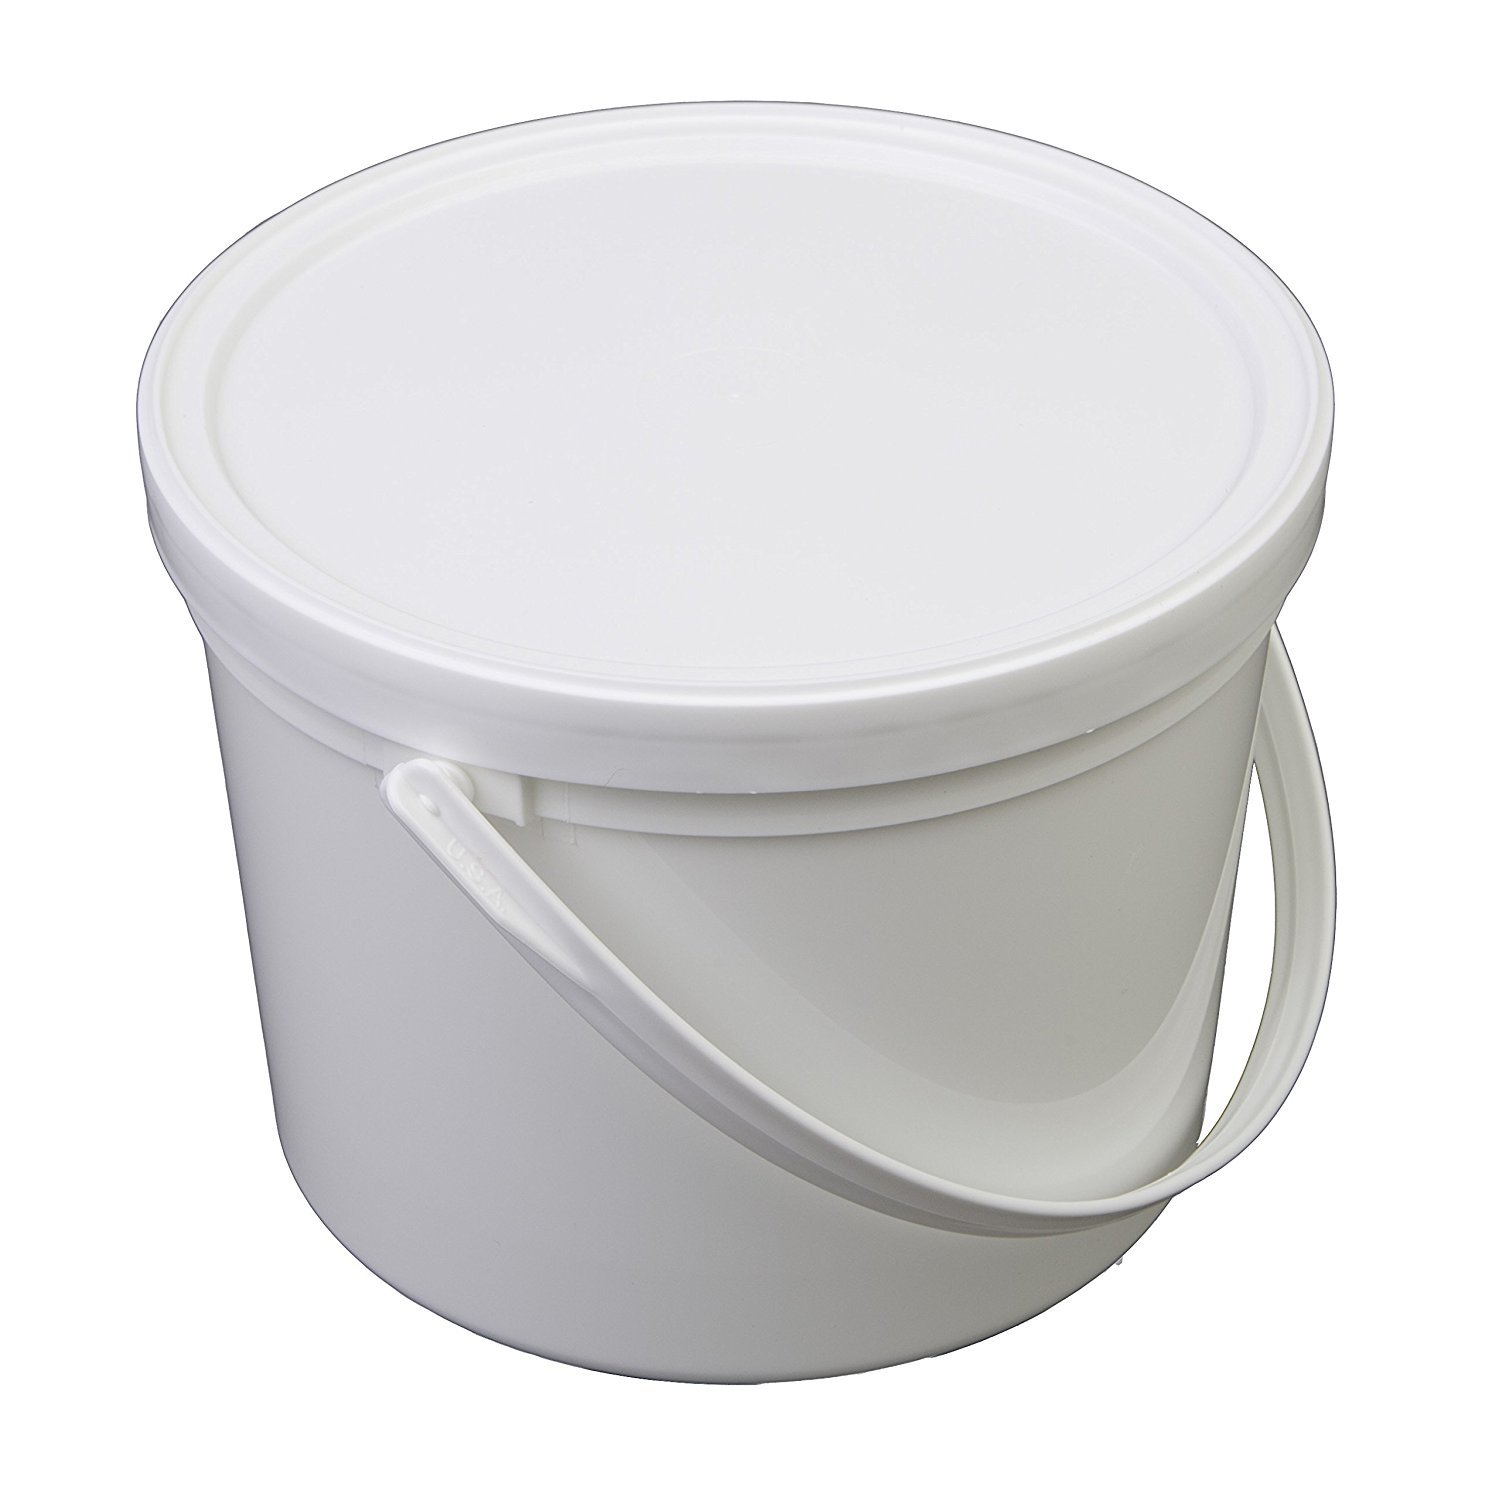 Consolidated Plastics Pail with Handle, Polypropylene, 1.5 Quart, White, 10 Piece by Consolidated Plastics (Image #1)